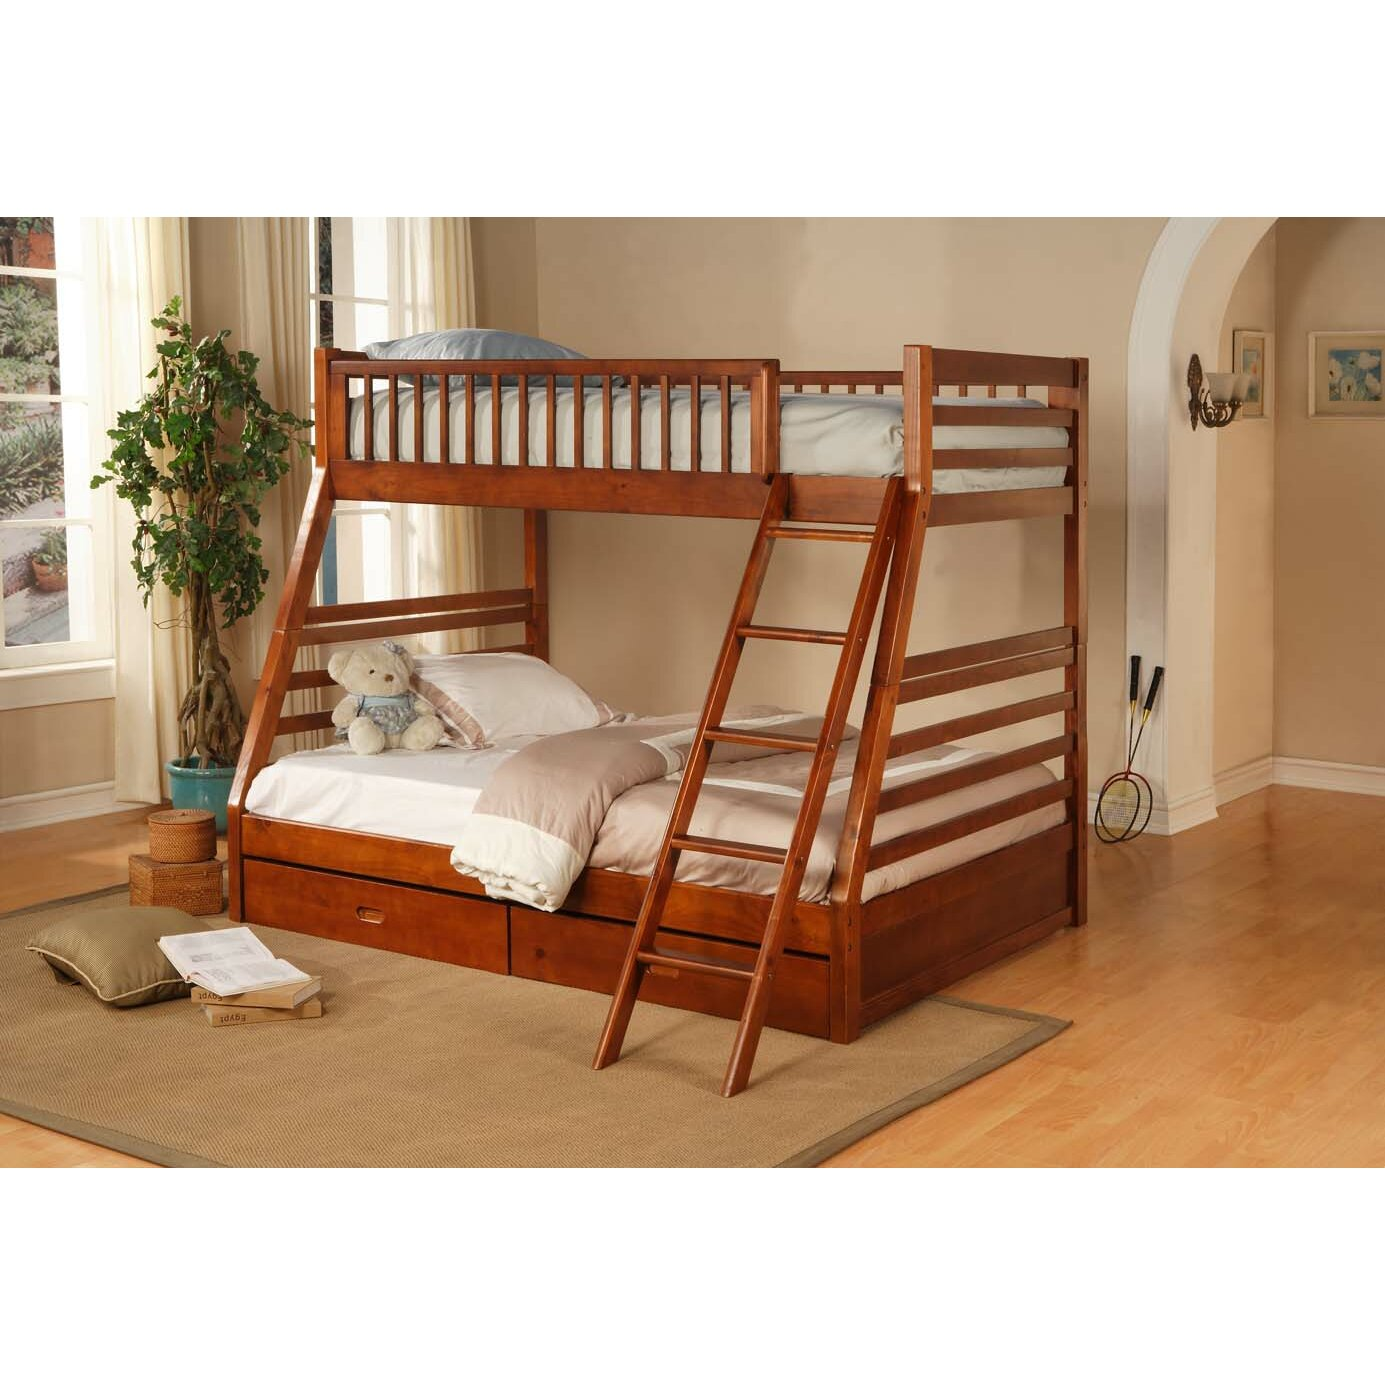 Wildon Home Dillard Twin Over Full Bunk Bed With Storage